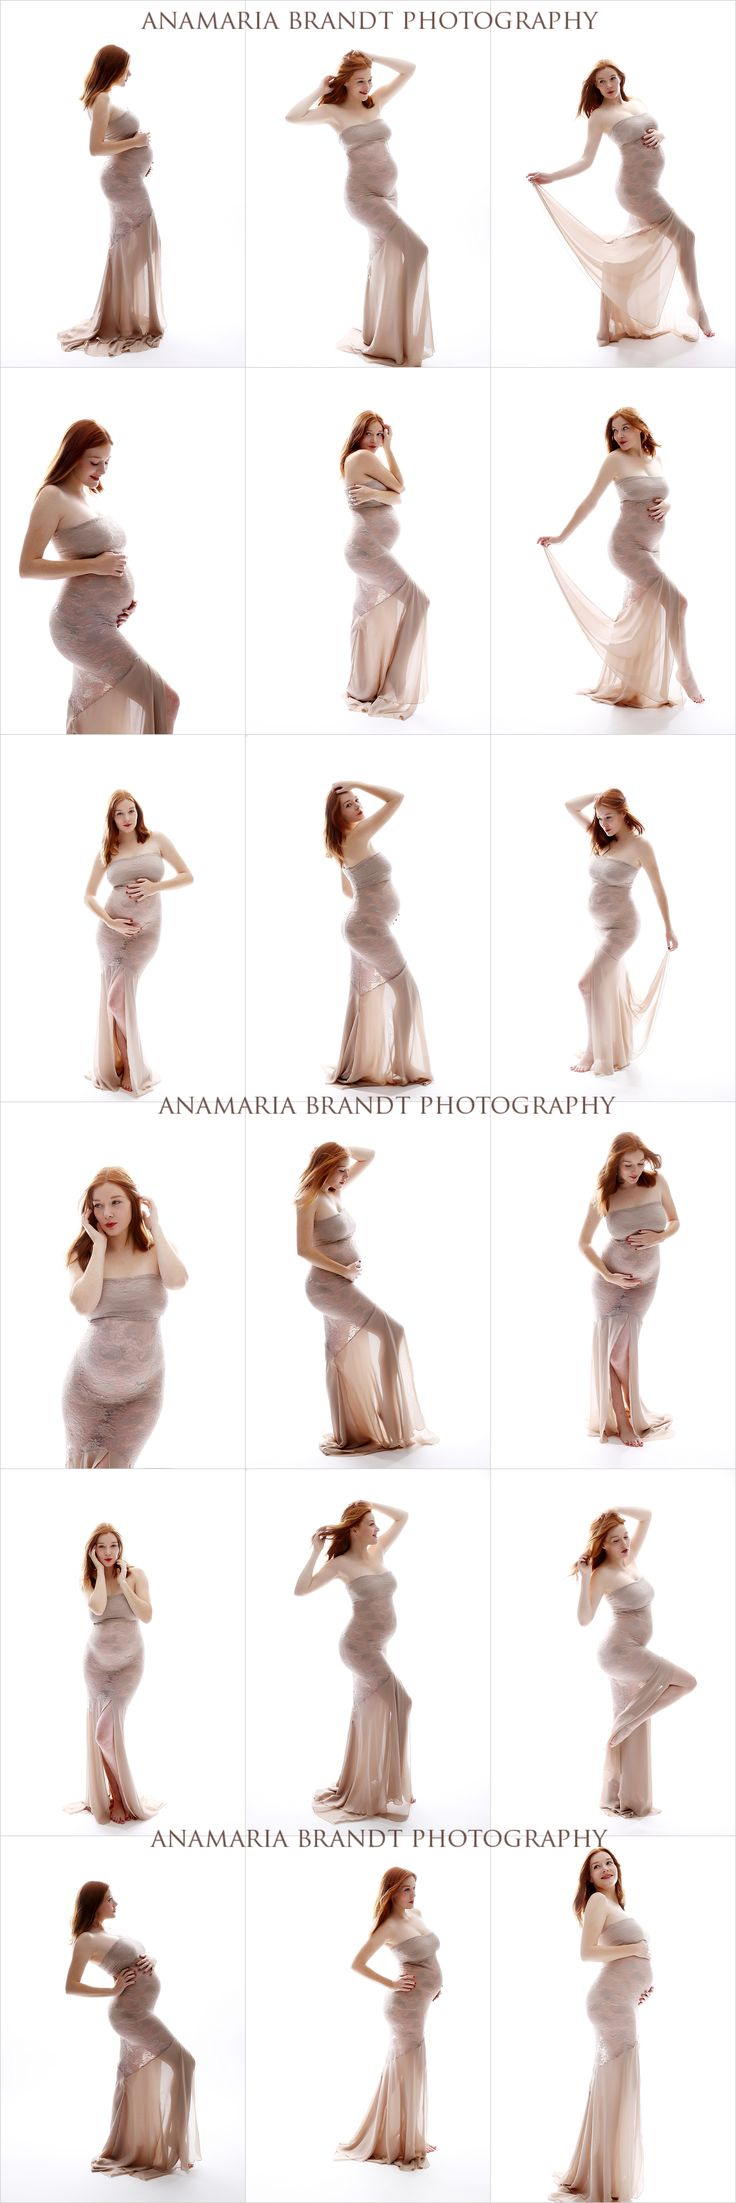 Transitional Pregnancy Photography by Ana Brandt Maternity Photography | Ana Brandt Orange County California Maternity: Clothing -http://www.shoptaopan.com www.bellybabylove... #maternity #pregnancy #belly #bump #bellypics #maternityphotography #maternityphotographer #ocphotographer #orangecountyphotography #anabrandt #pregnancyphotography #pregnancyphotos #ppa #irvine #california #losangeles #tustin #maternityclothing #maternityrobe #maternitygowns #pregnancypics #pregnancygowns #taopan